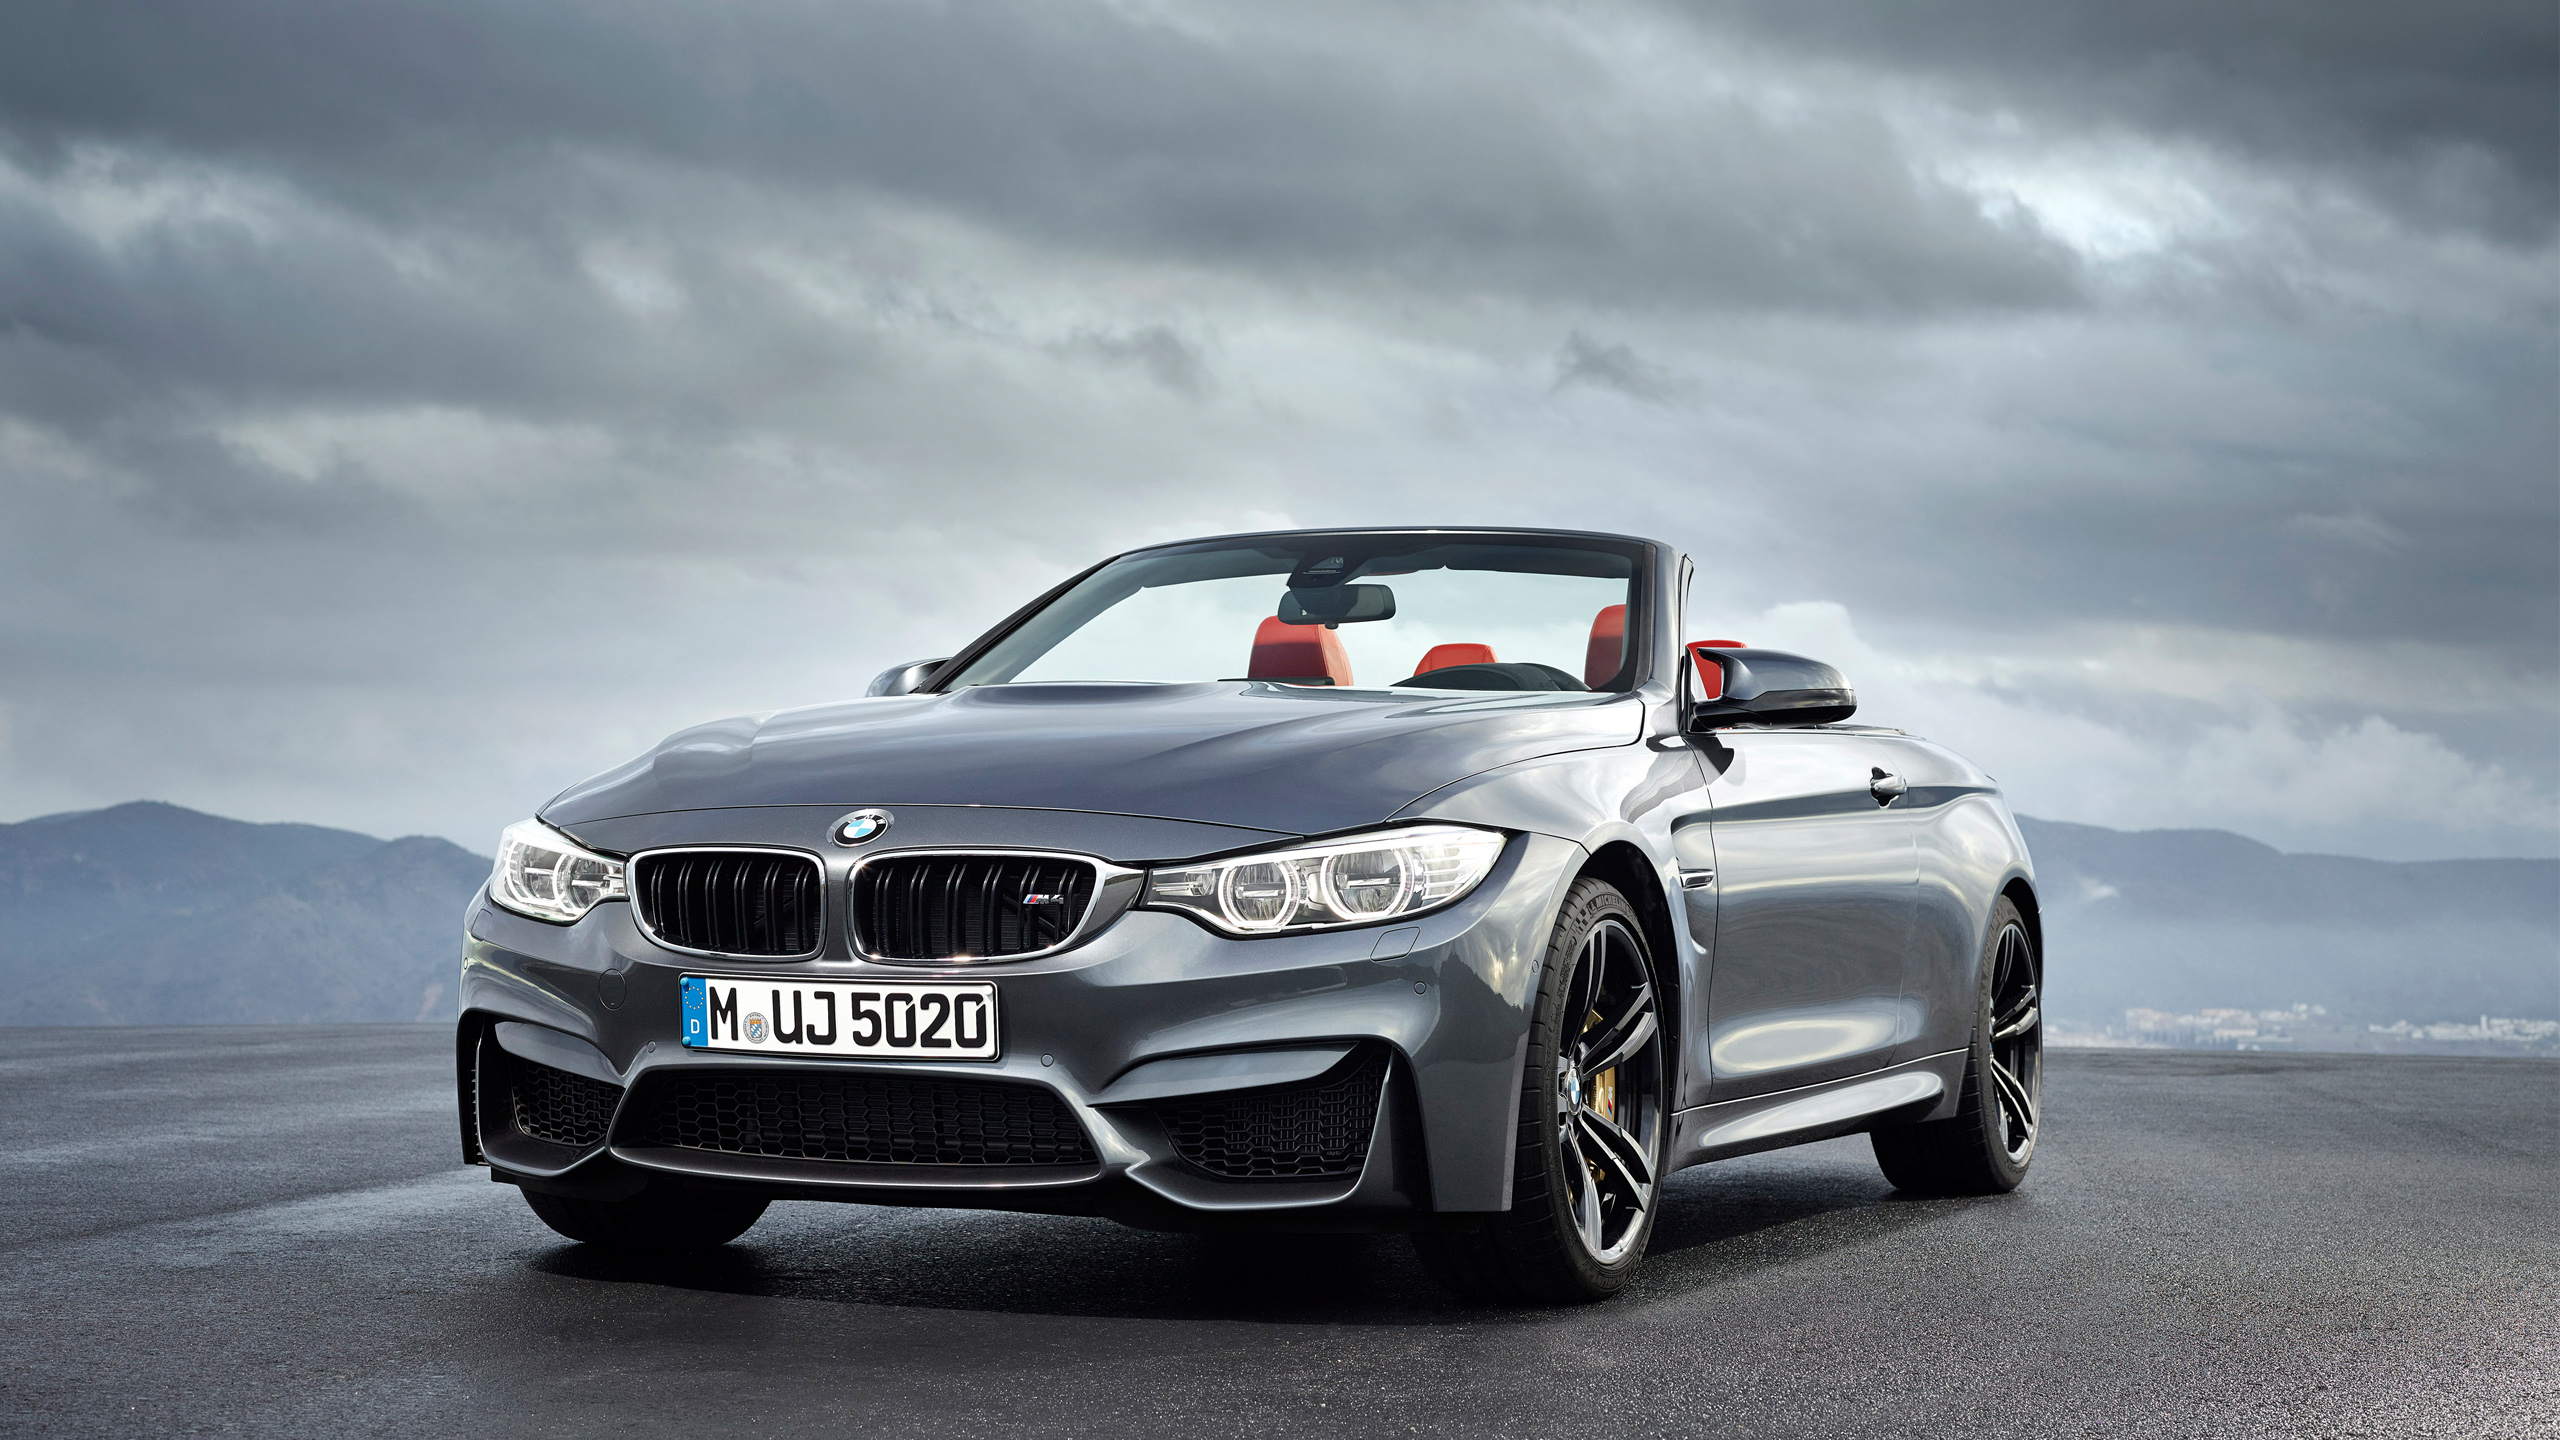 2015 bmw m4 wallpaper full hd pictures